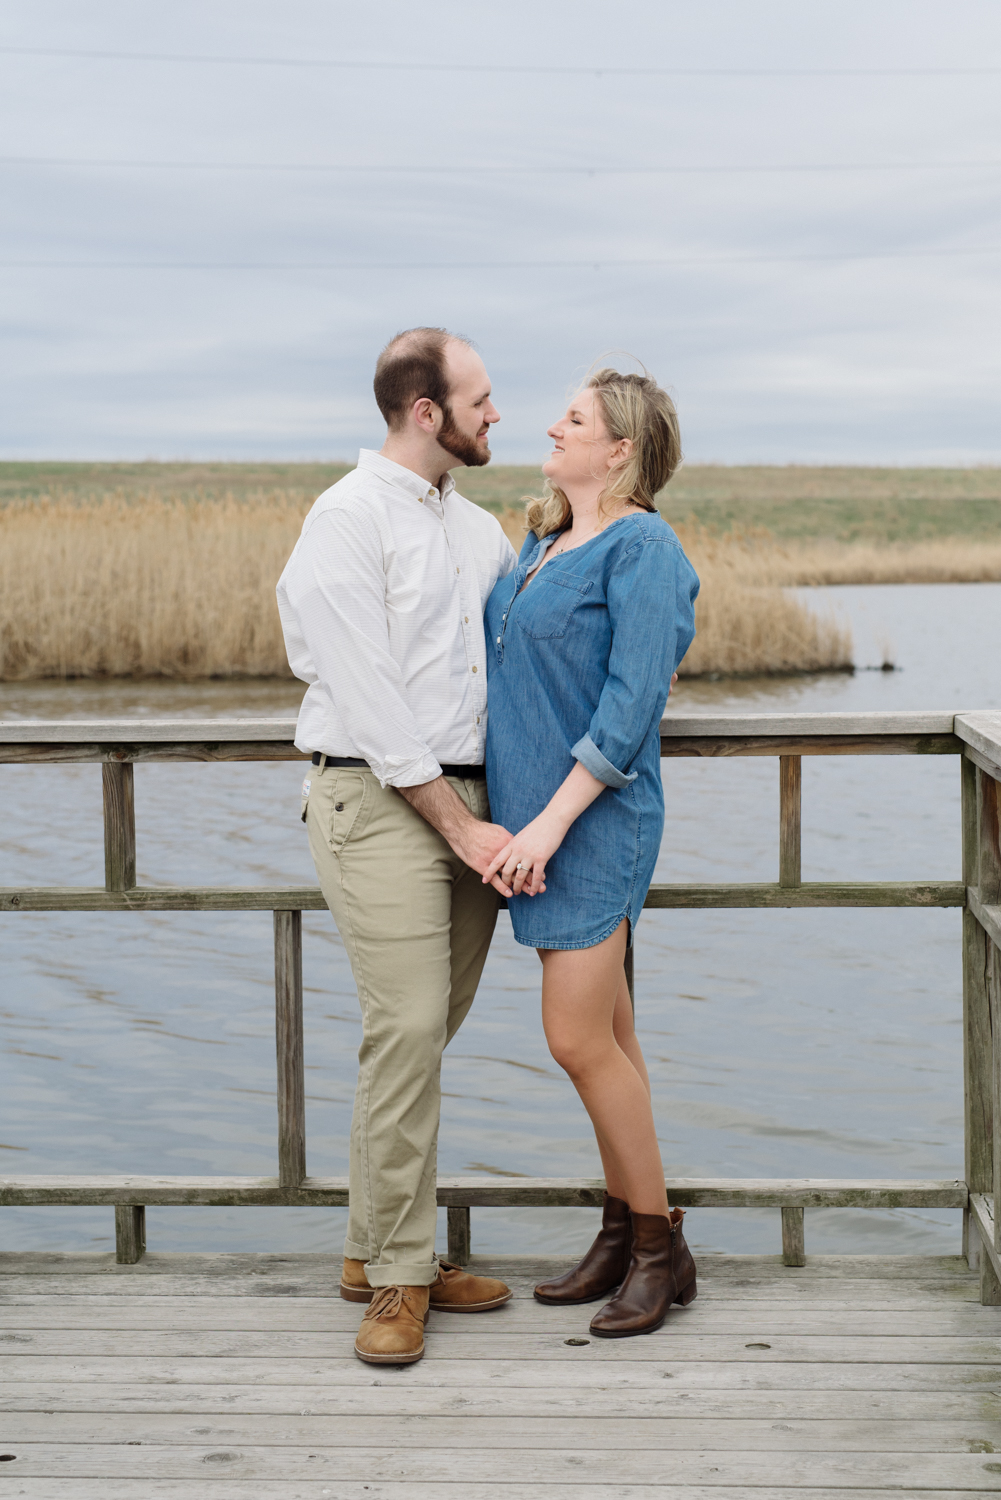 Matt+Melissa- Meadowlands Environmental Center Engagement Session- New Jersey- Olivia Christina Photo-50.JPG